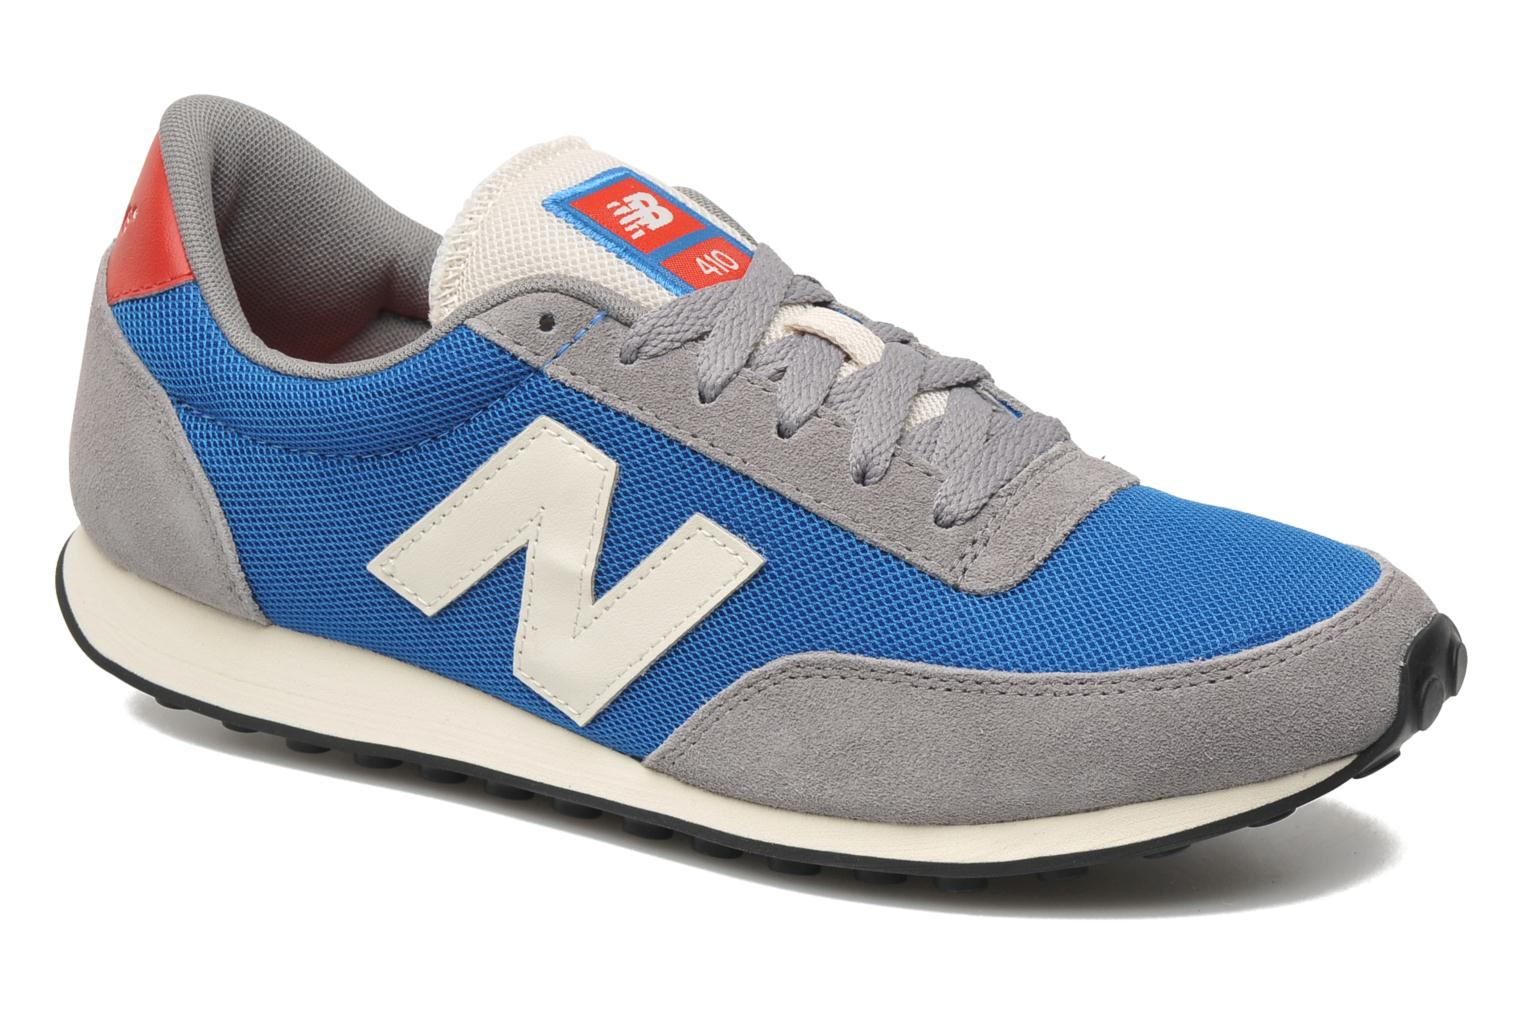 new balance u410 trainers in blue at 177031. Black Bedroom Furniture Sets. Home Design Ideas